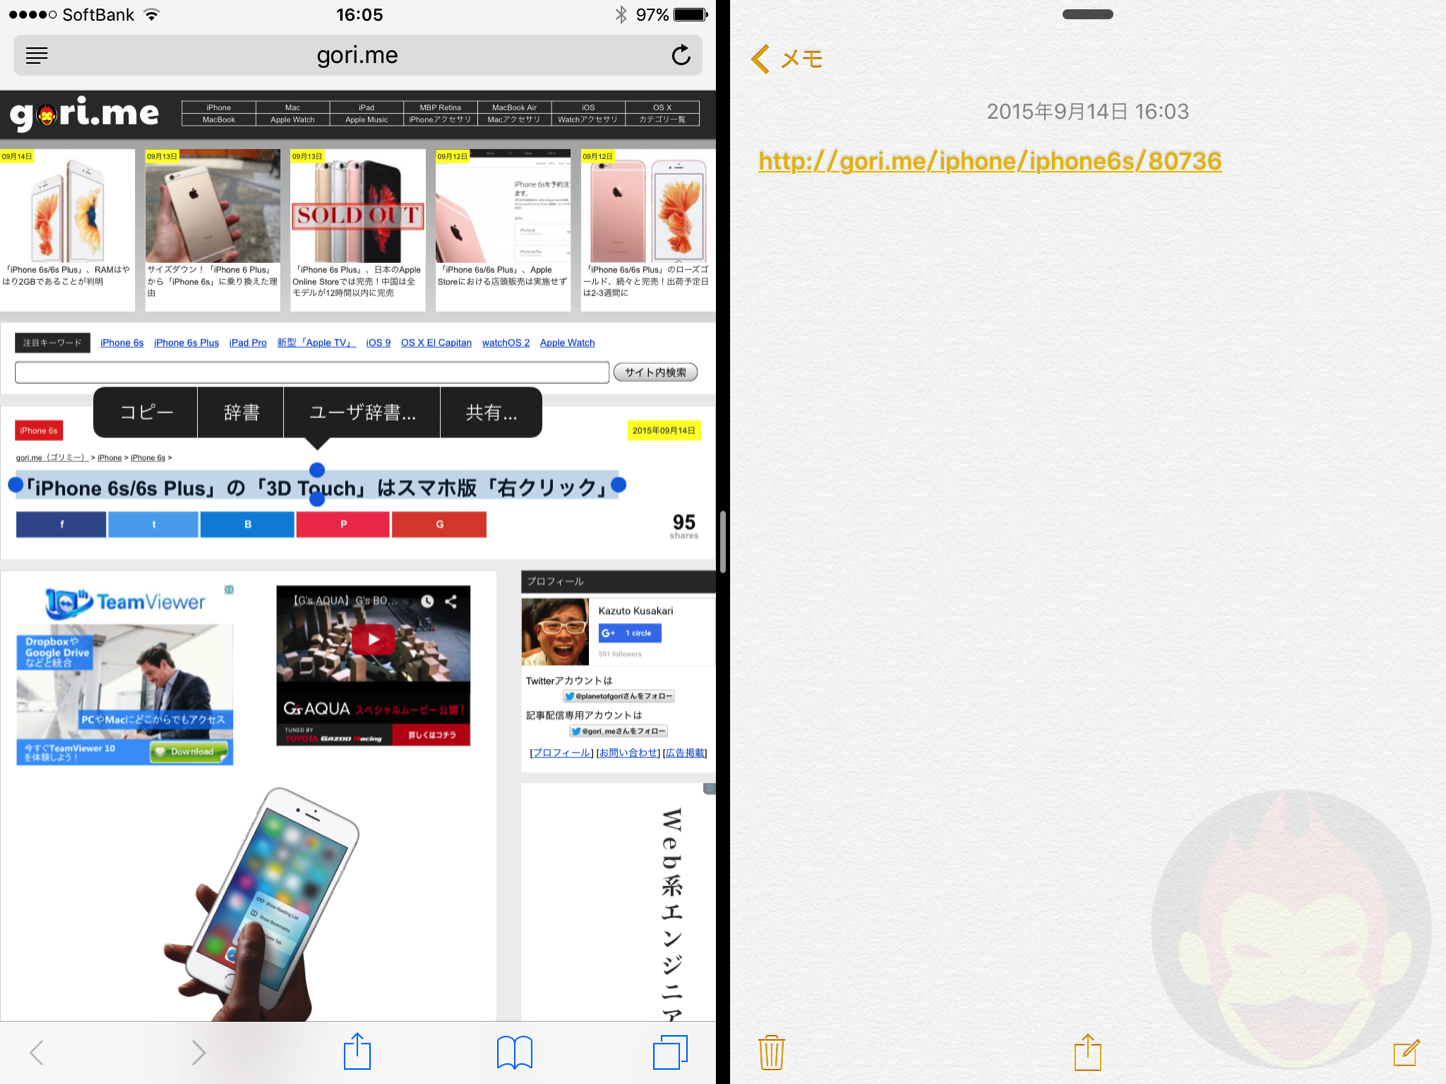 IOS 9 iPad Split View